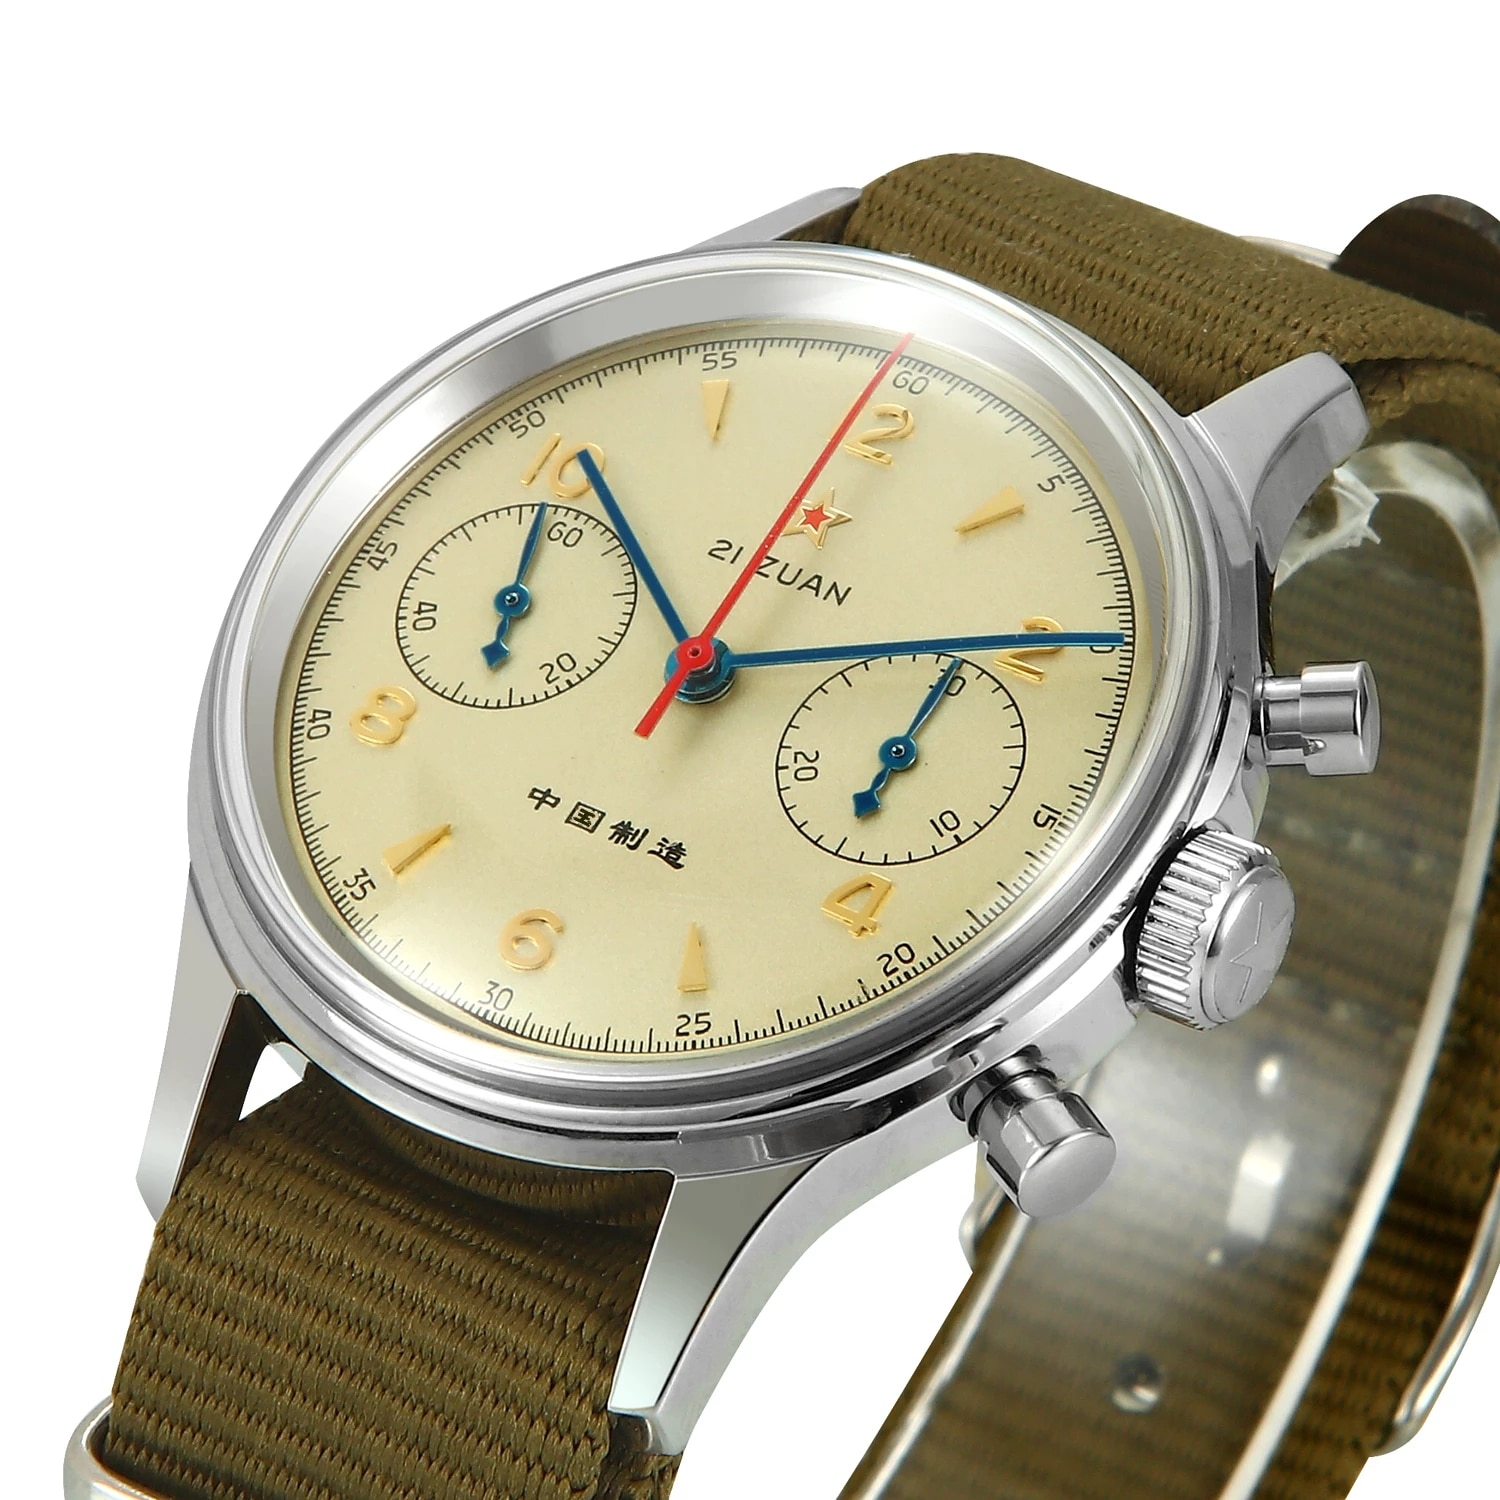 40mm China Aviation Chronograph Seagull Movement 1963 Mechanical Watch For Men 40mm ST1901 Sapphire